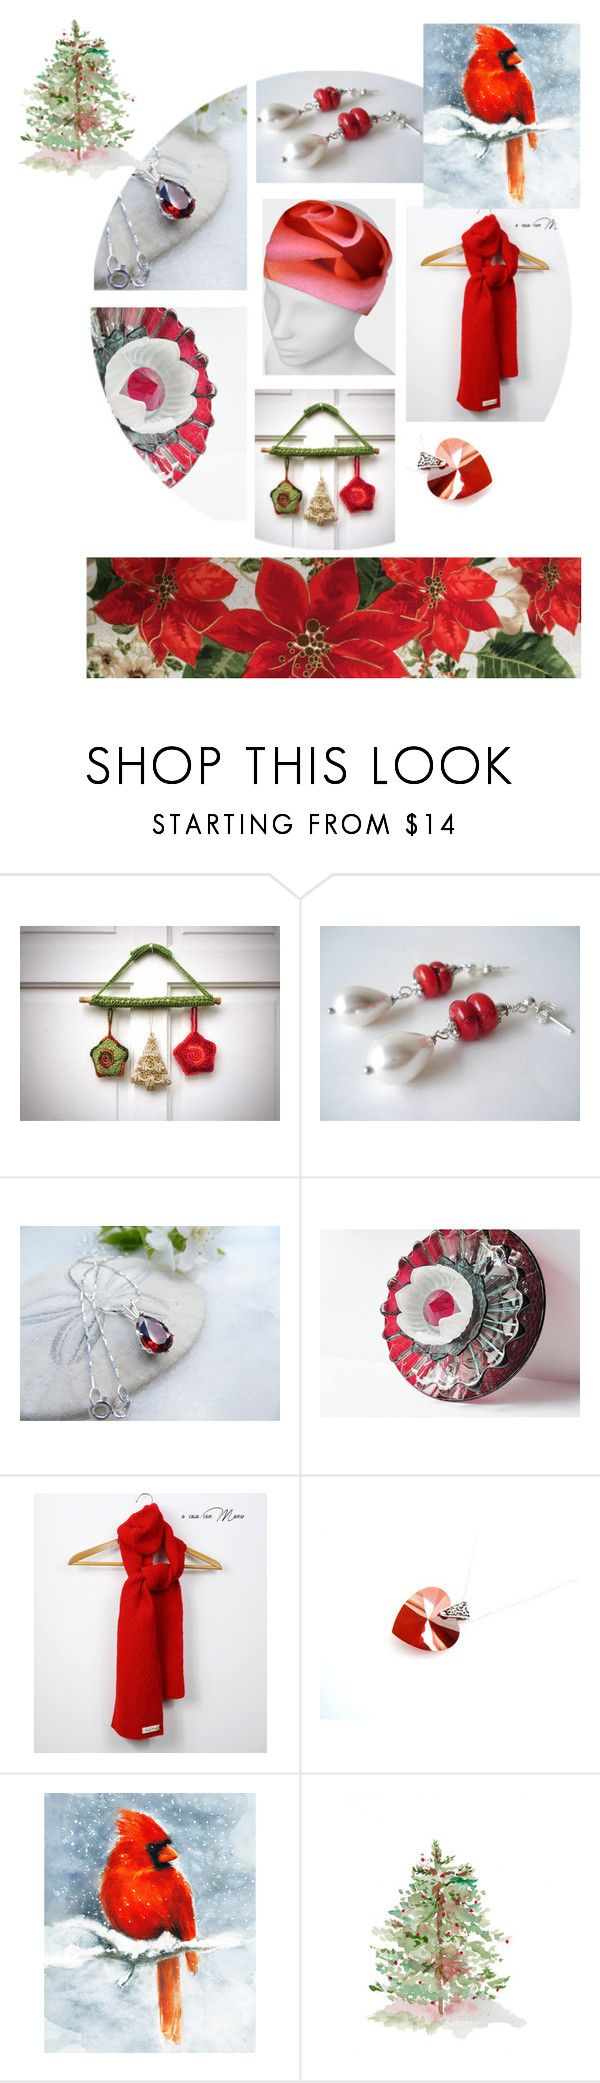 Tis' The Season by jarmgirl on Polyvore featuring vintage